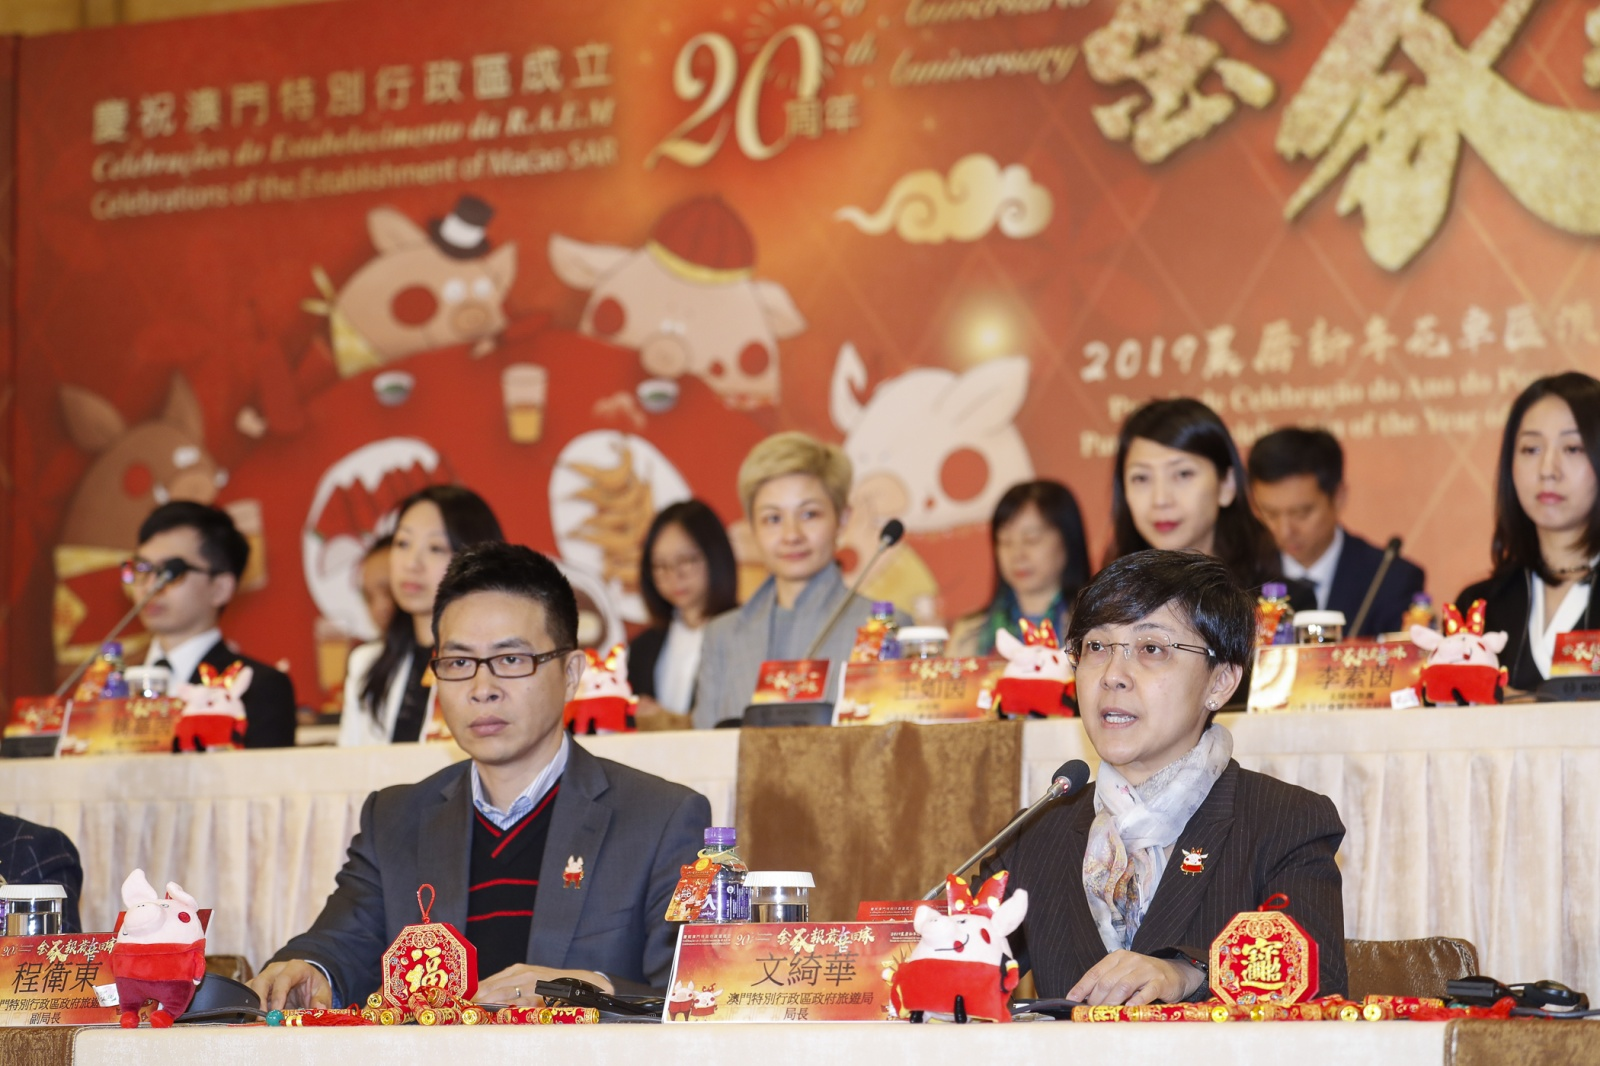 MGTO to celebrate the 20th Anniversary of the Establishment of the Macao Special Administrative Region with a parade for celebration of the Year of the Pig